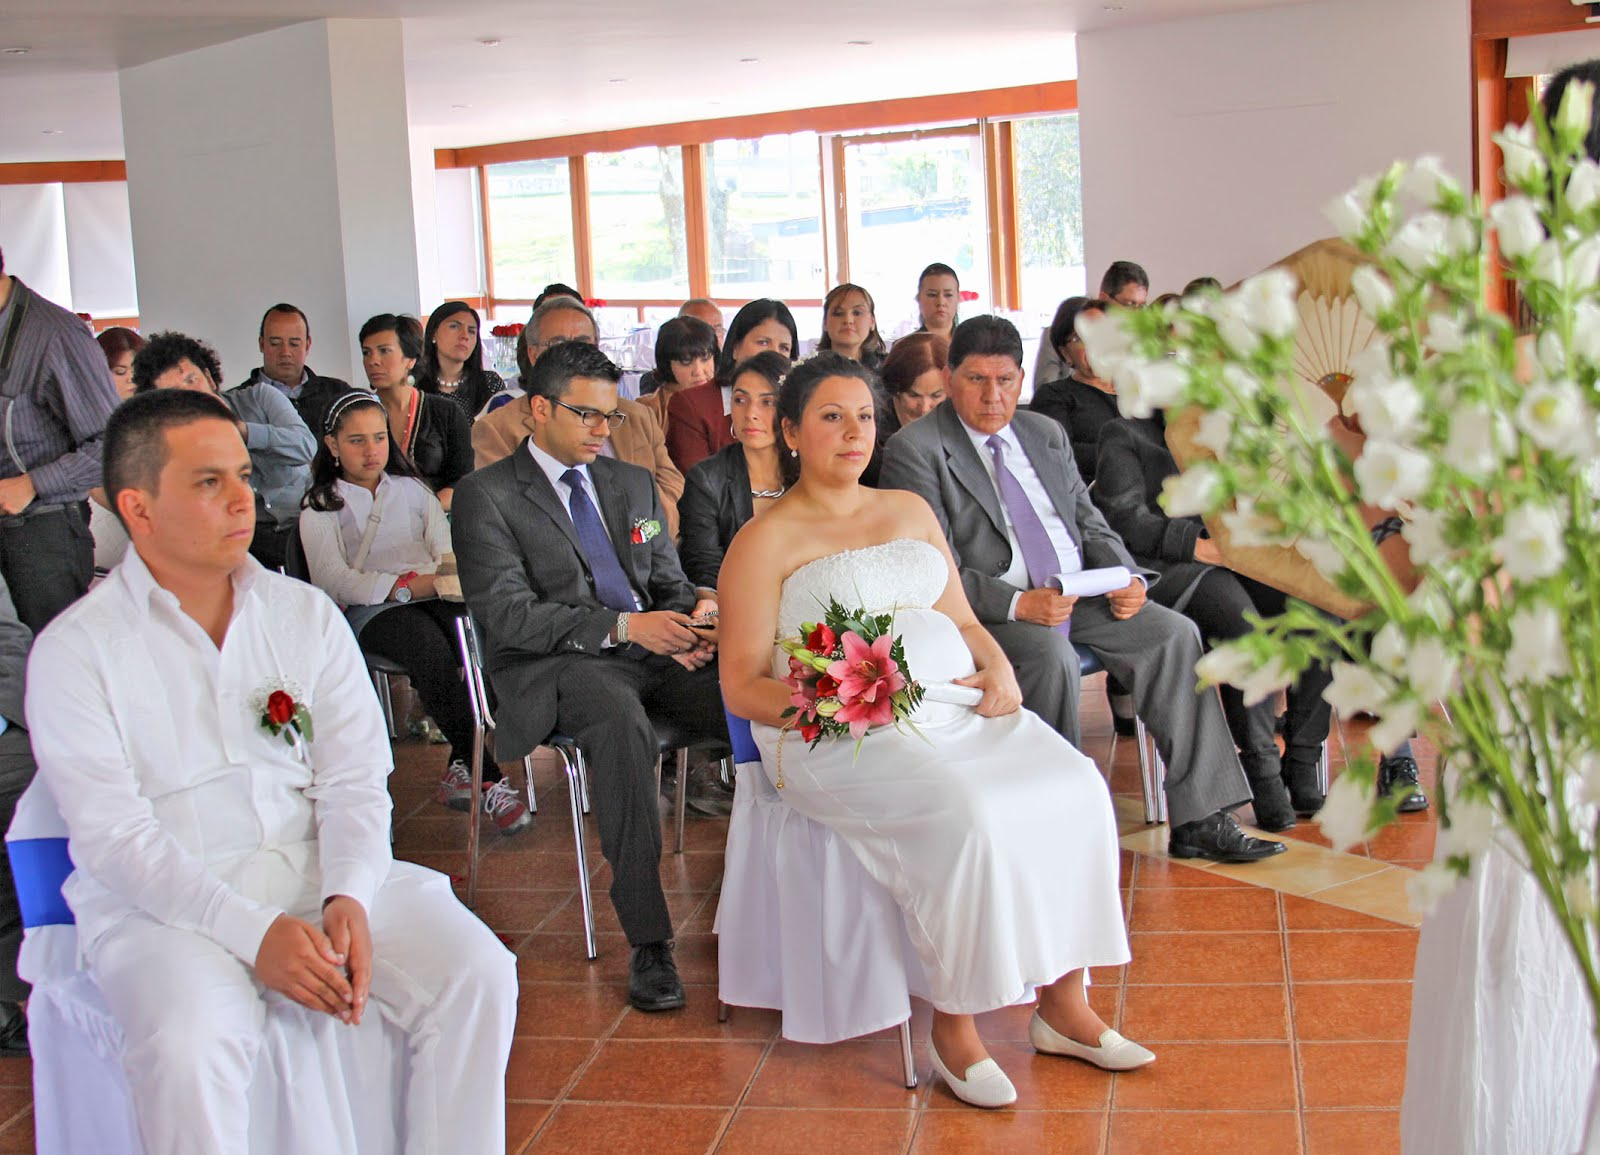 La boda de Carolina y Julián